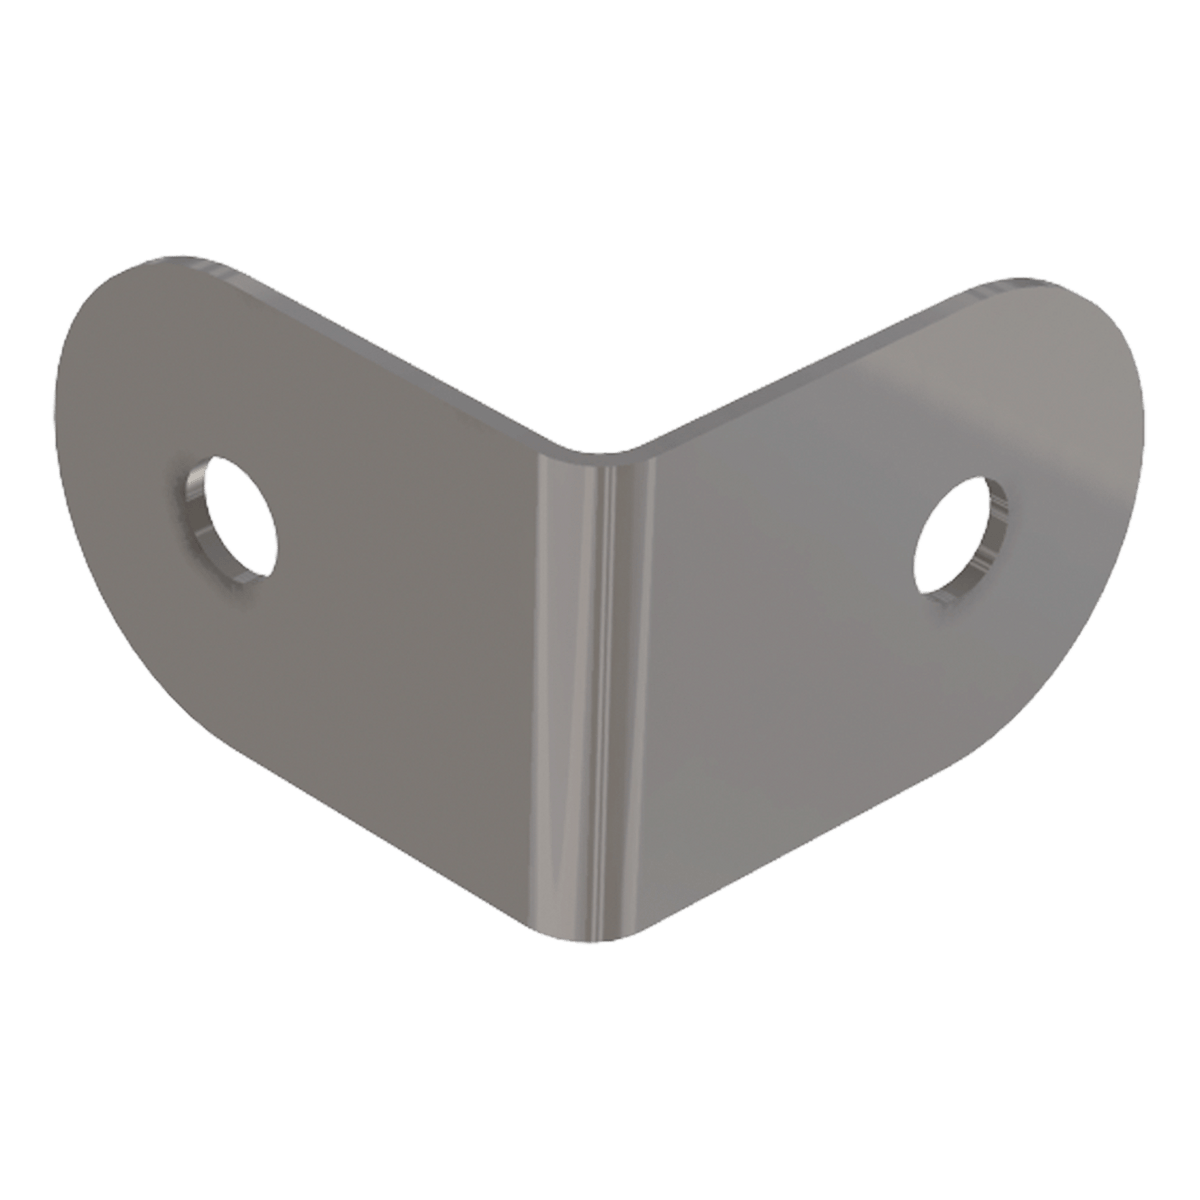 Small Two-Hole Clamp, 3/4 view